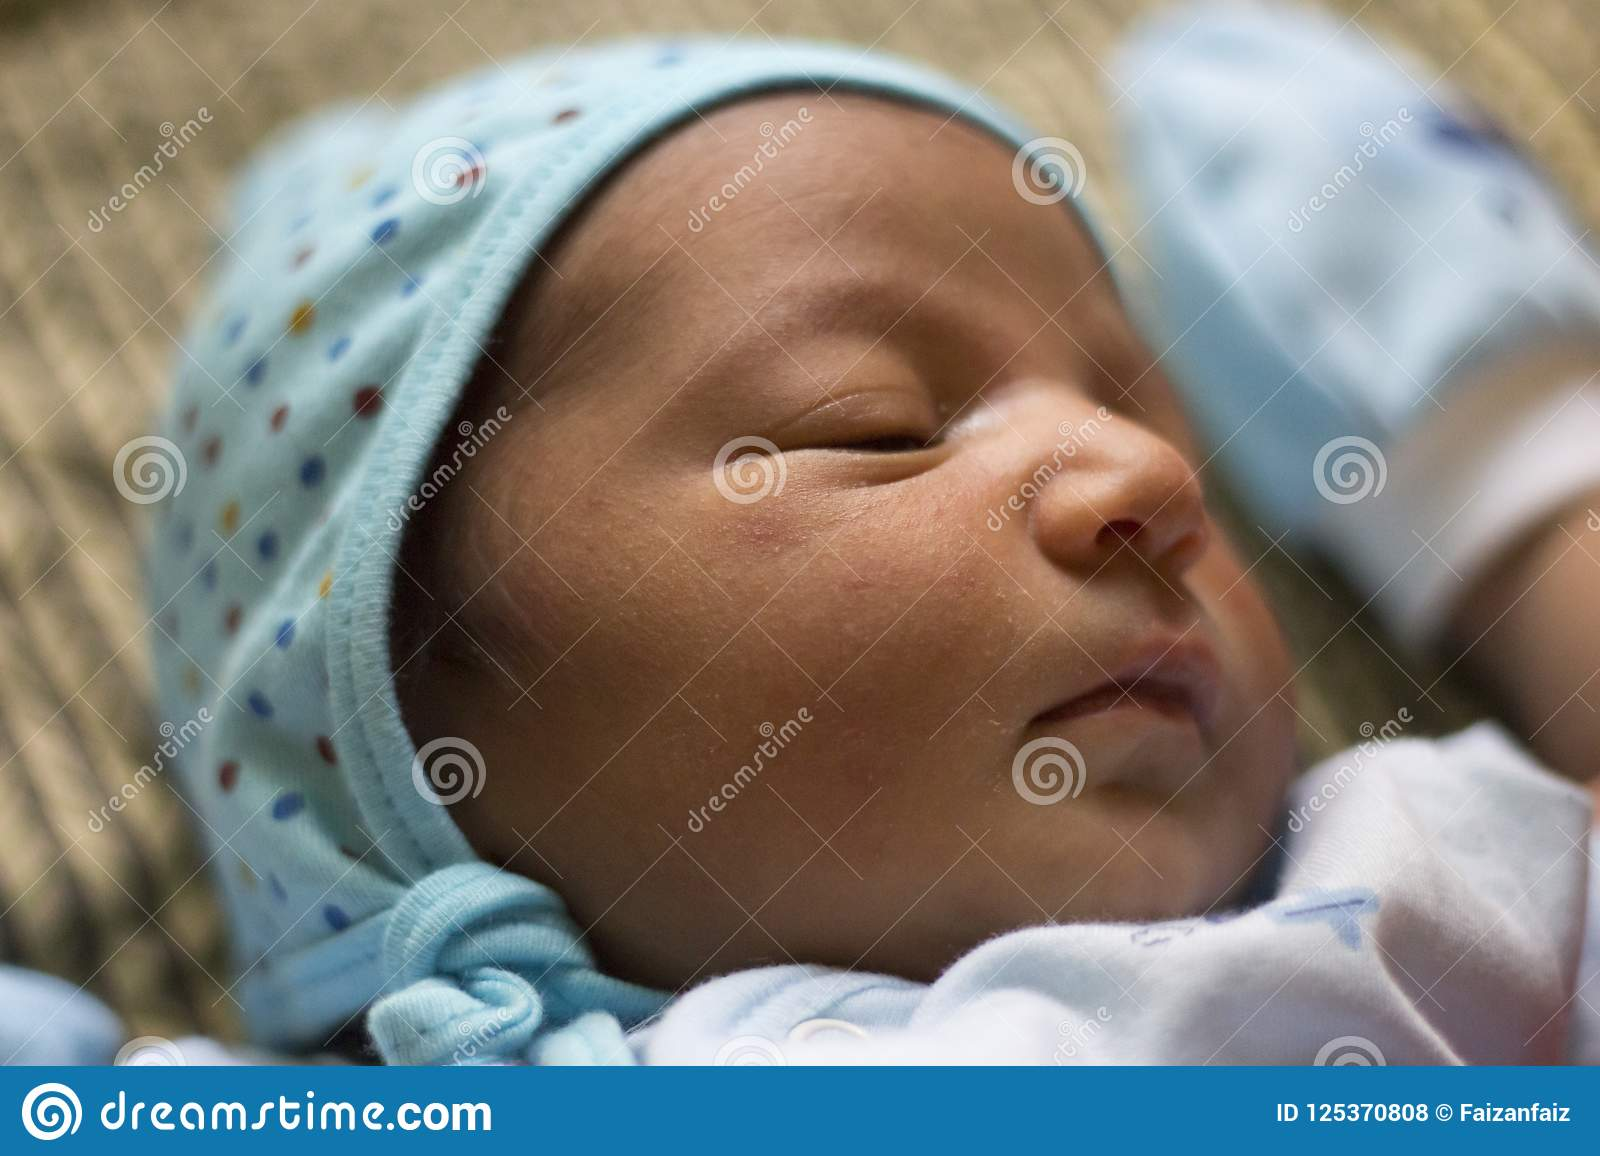 One day old indian asian infant newborn baby black and white picture